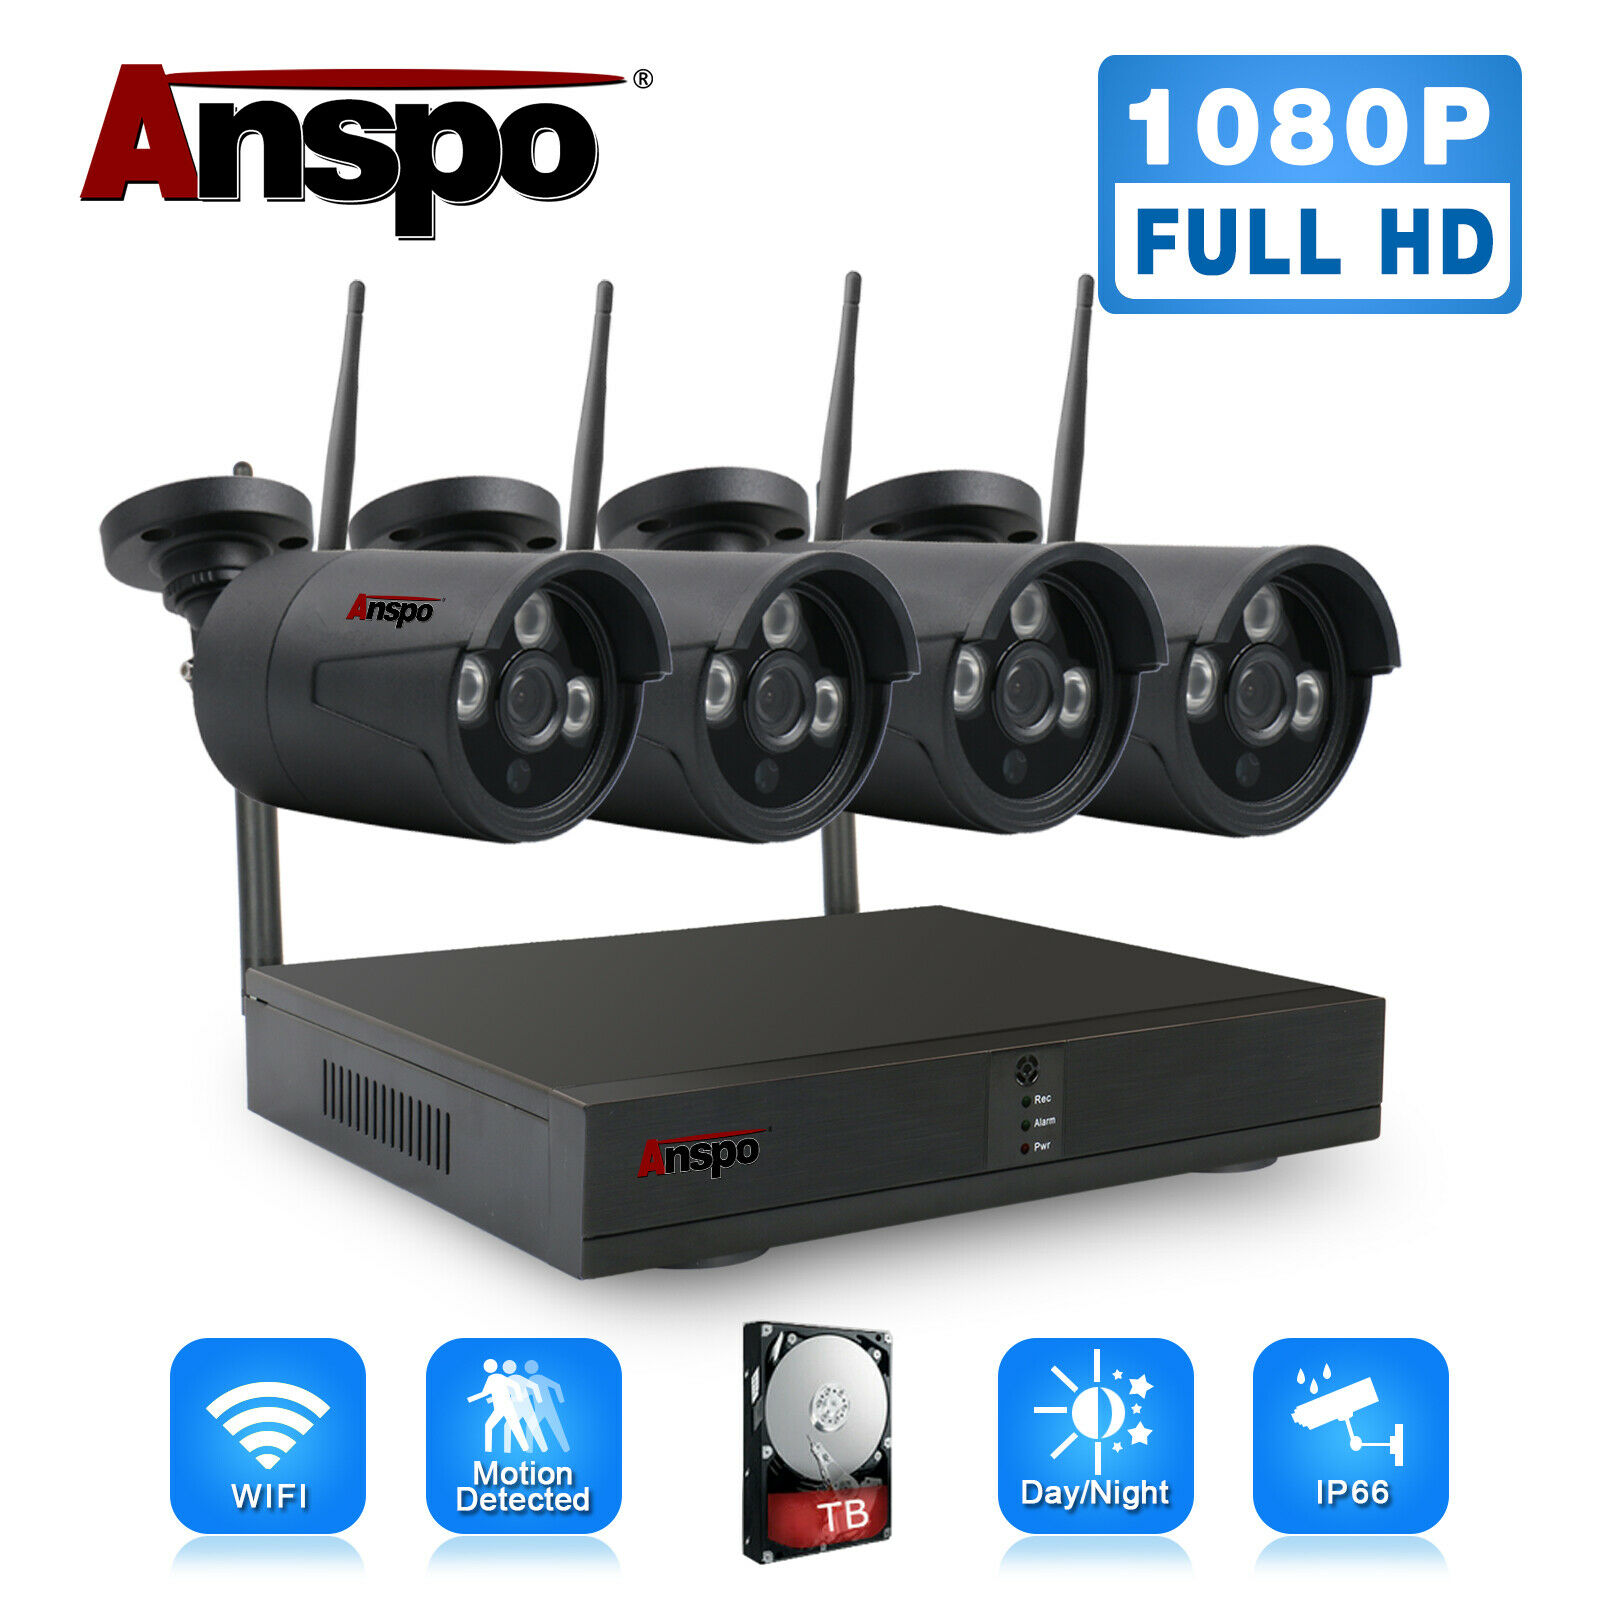 jooan security camera system wireless nvr kit wifi cctv system 4ch 1080p 2 0mp p2p indoor outdoor ip camera surveillance kits Anspo Black Wireless Security Camera System 4CH HD 1080P CCTV WIFI Kit NVR Outdoor With HDD